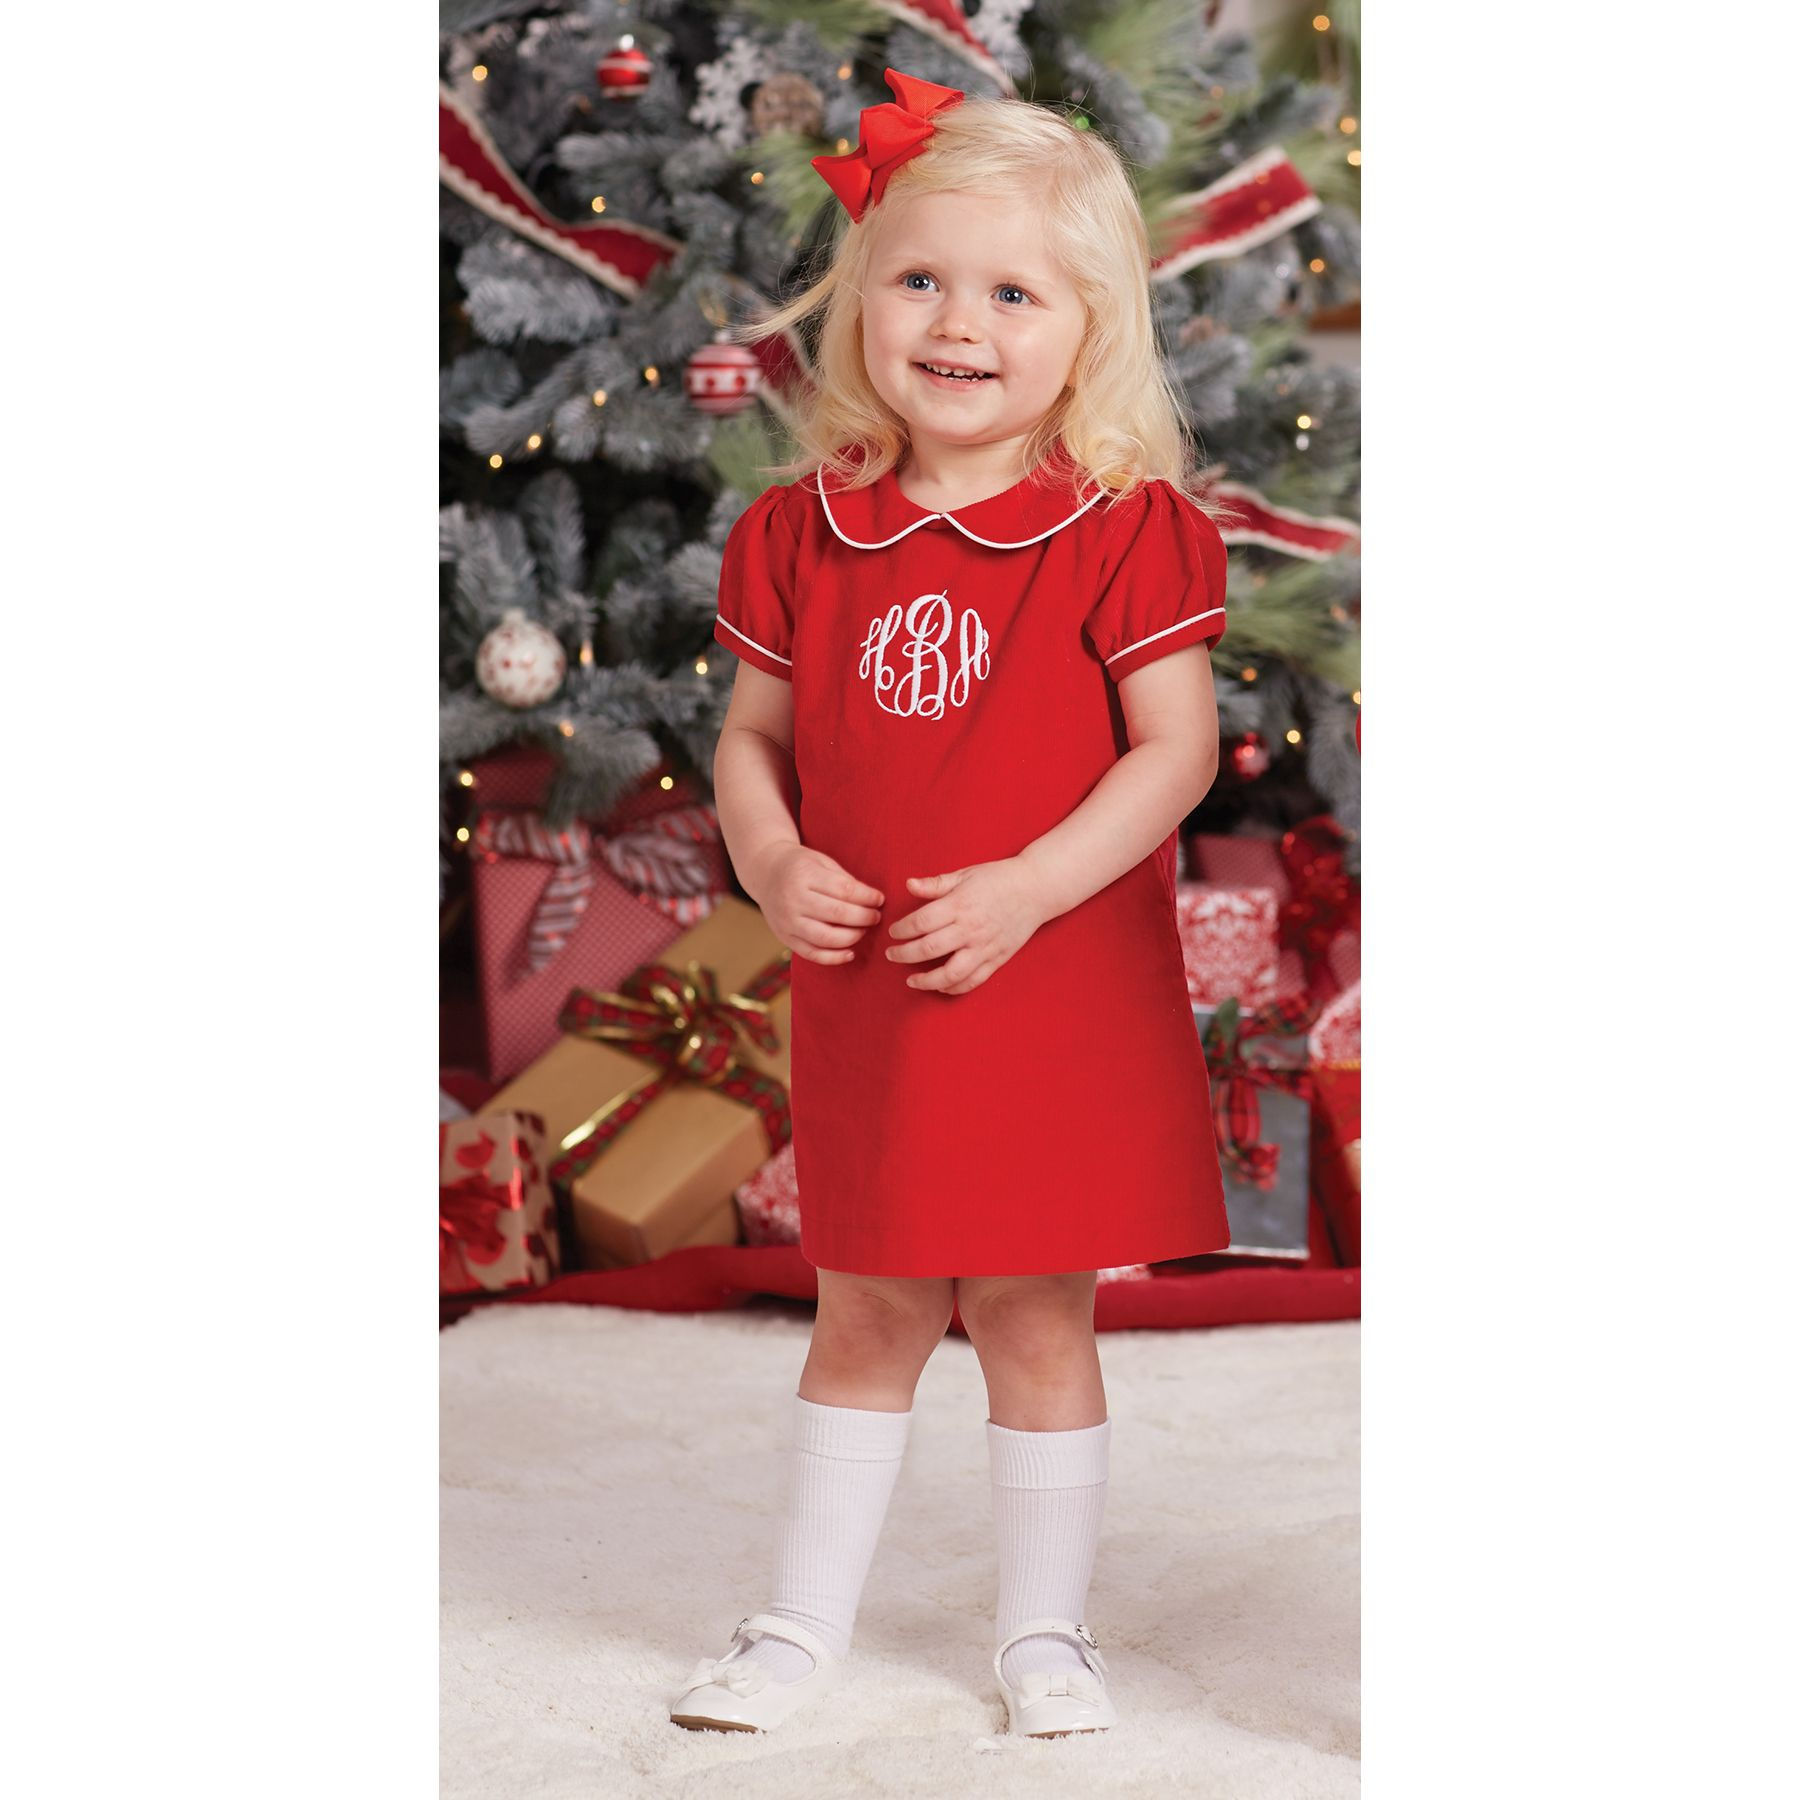 6fb527787 Red corduroy dress features Peter Pan collar, white piping around collar  and…